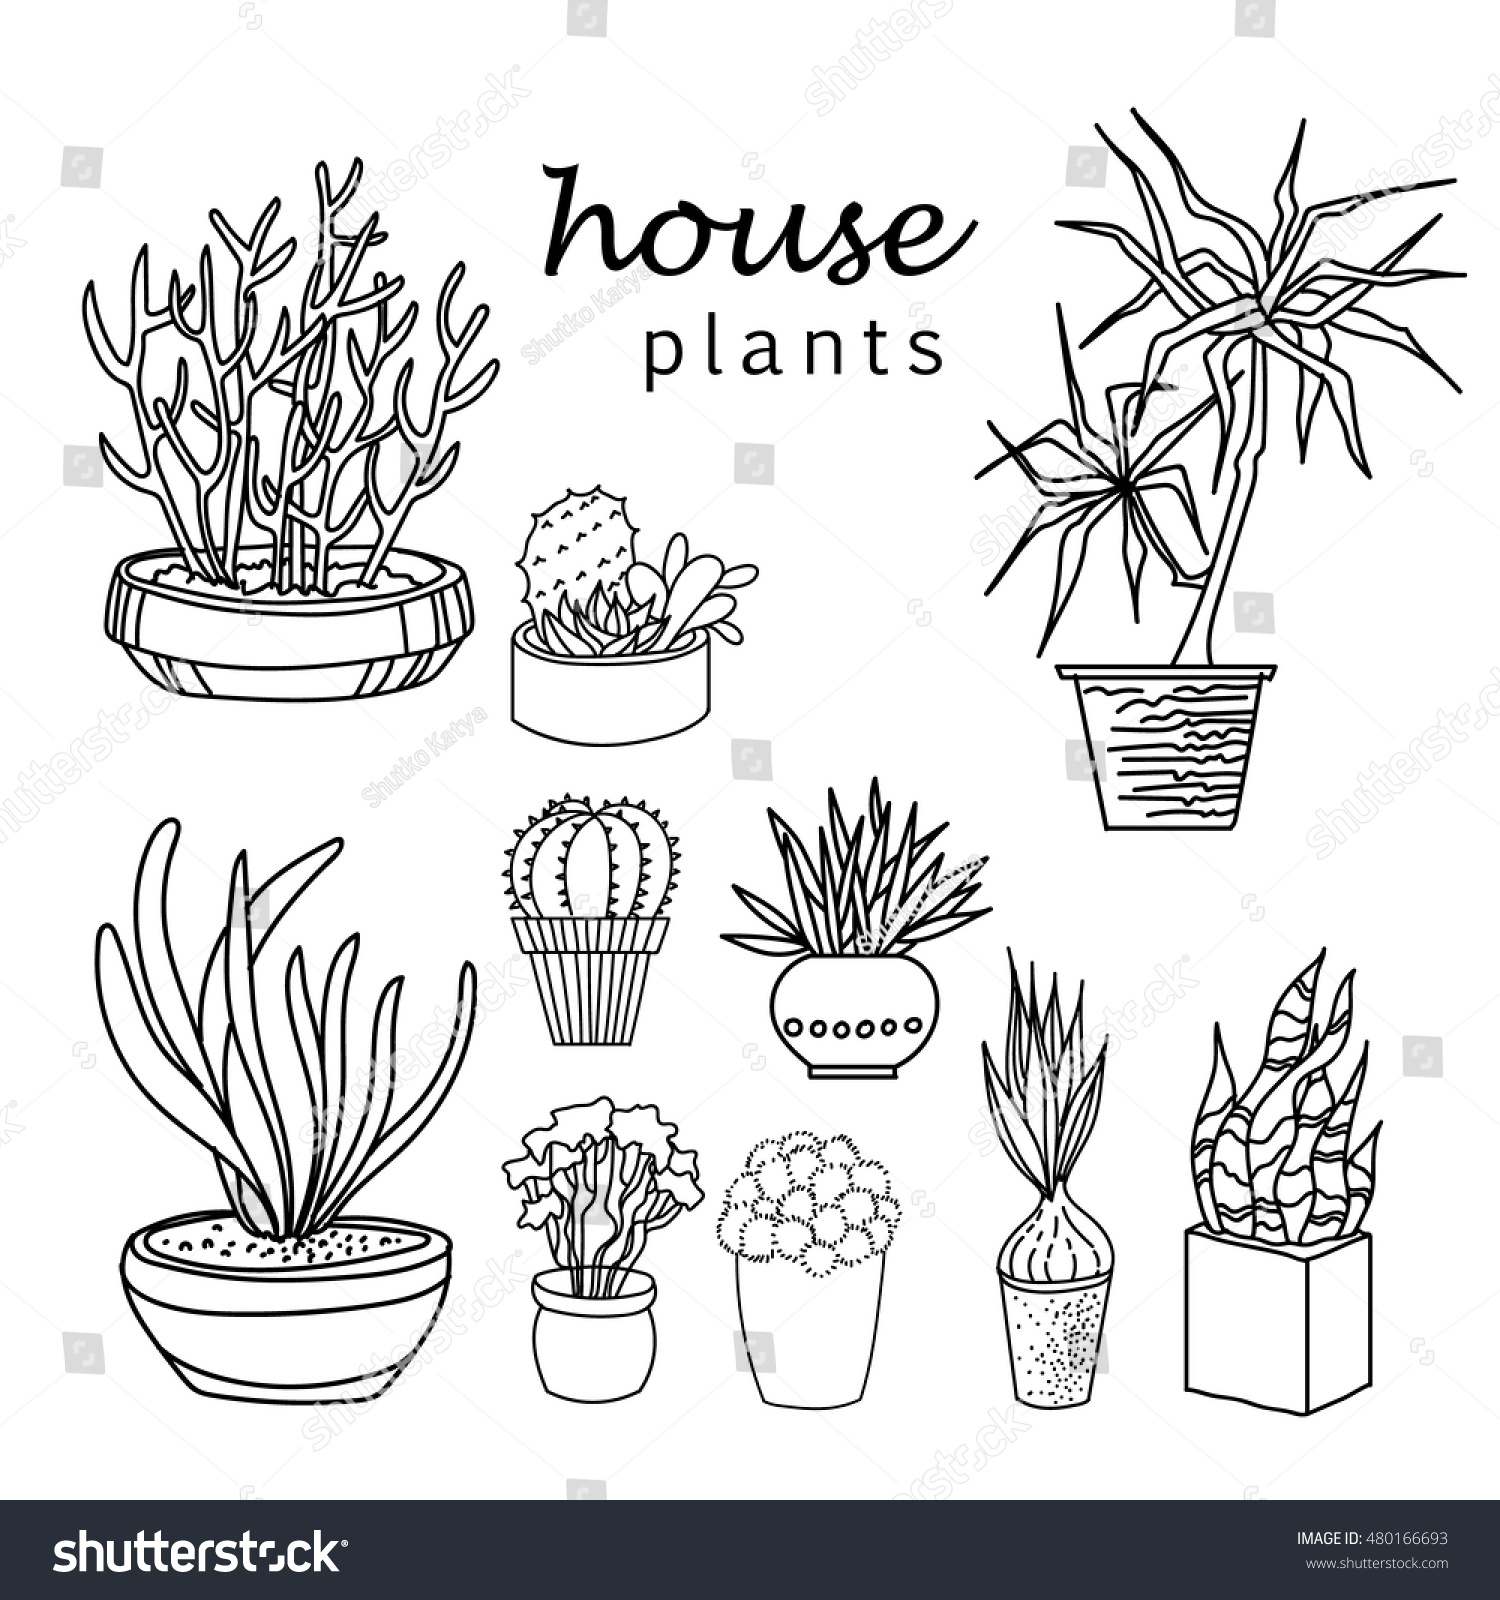 Indoor home office plants royalty Greenhouse Illustration Of Houseplants Indoor And Office Plants In Potset Of House Plant Isolated Avopixcom Royaltyfree Illustration Of Houseplants Indoor Andu2026 480166693